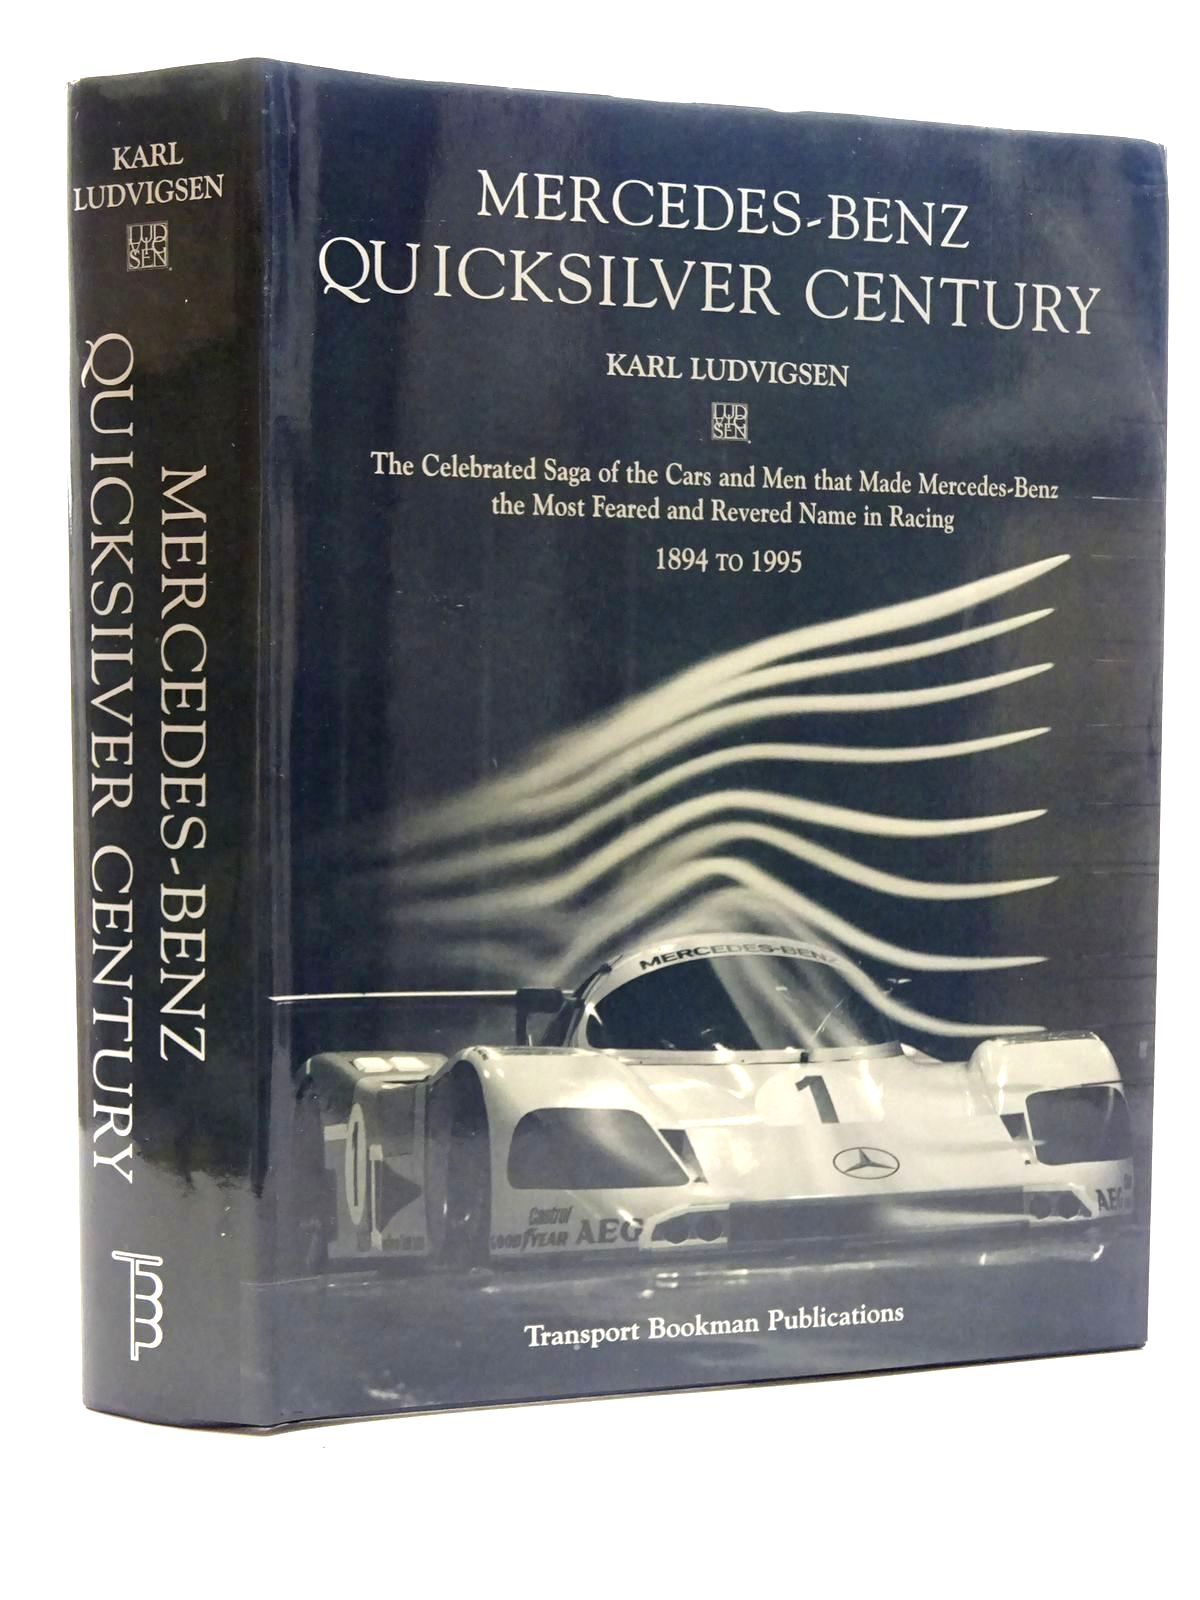 Photo of MERCEDES-BENZ QUICKSILVER CENTURY written by Ludvigsen, Karl published by Transport Bookman Publications (STOCK CODE: 1610489)  for sale by Stella & Rose's Books